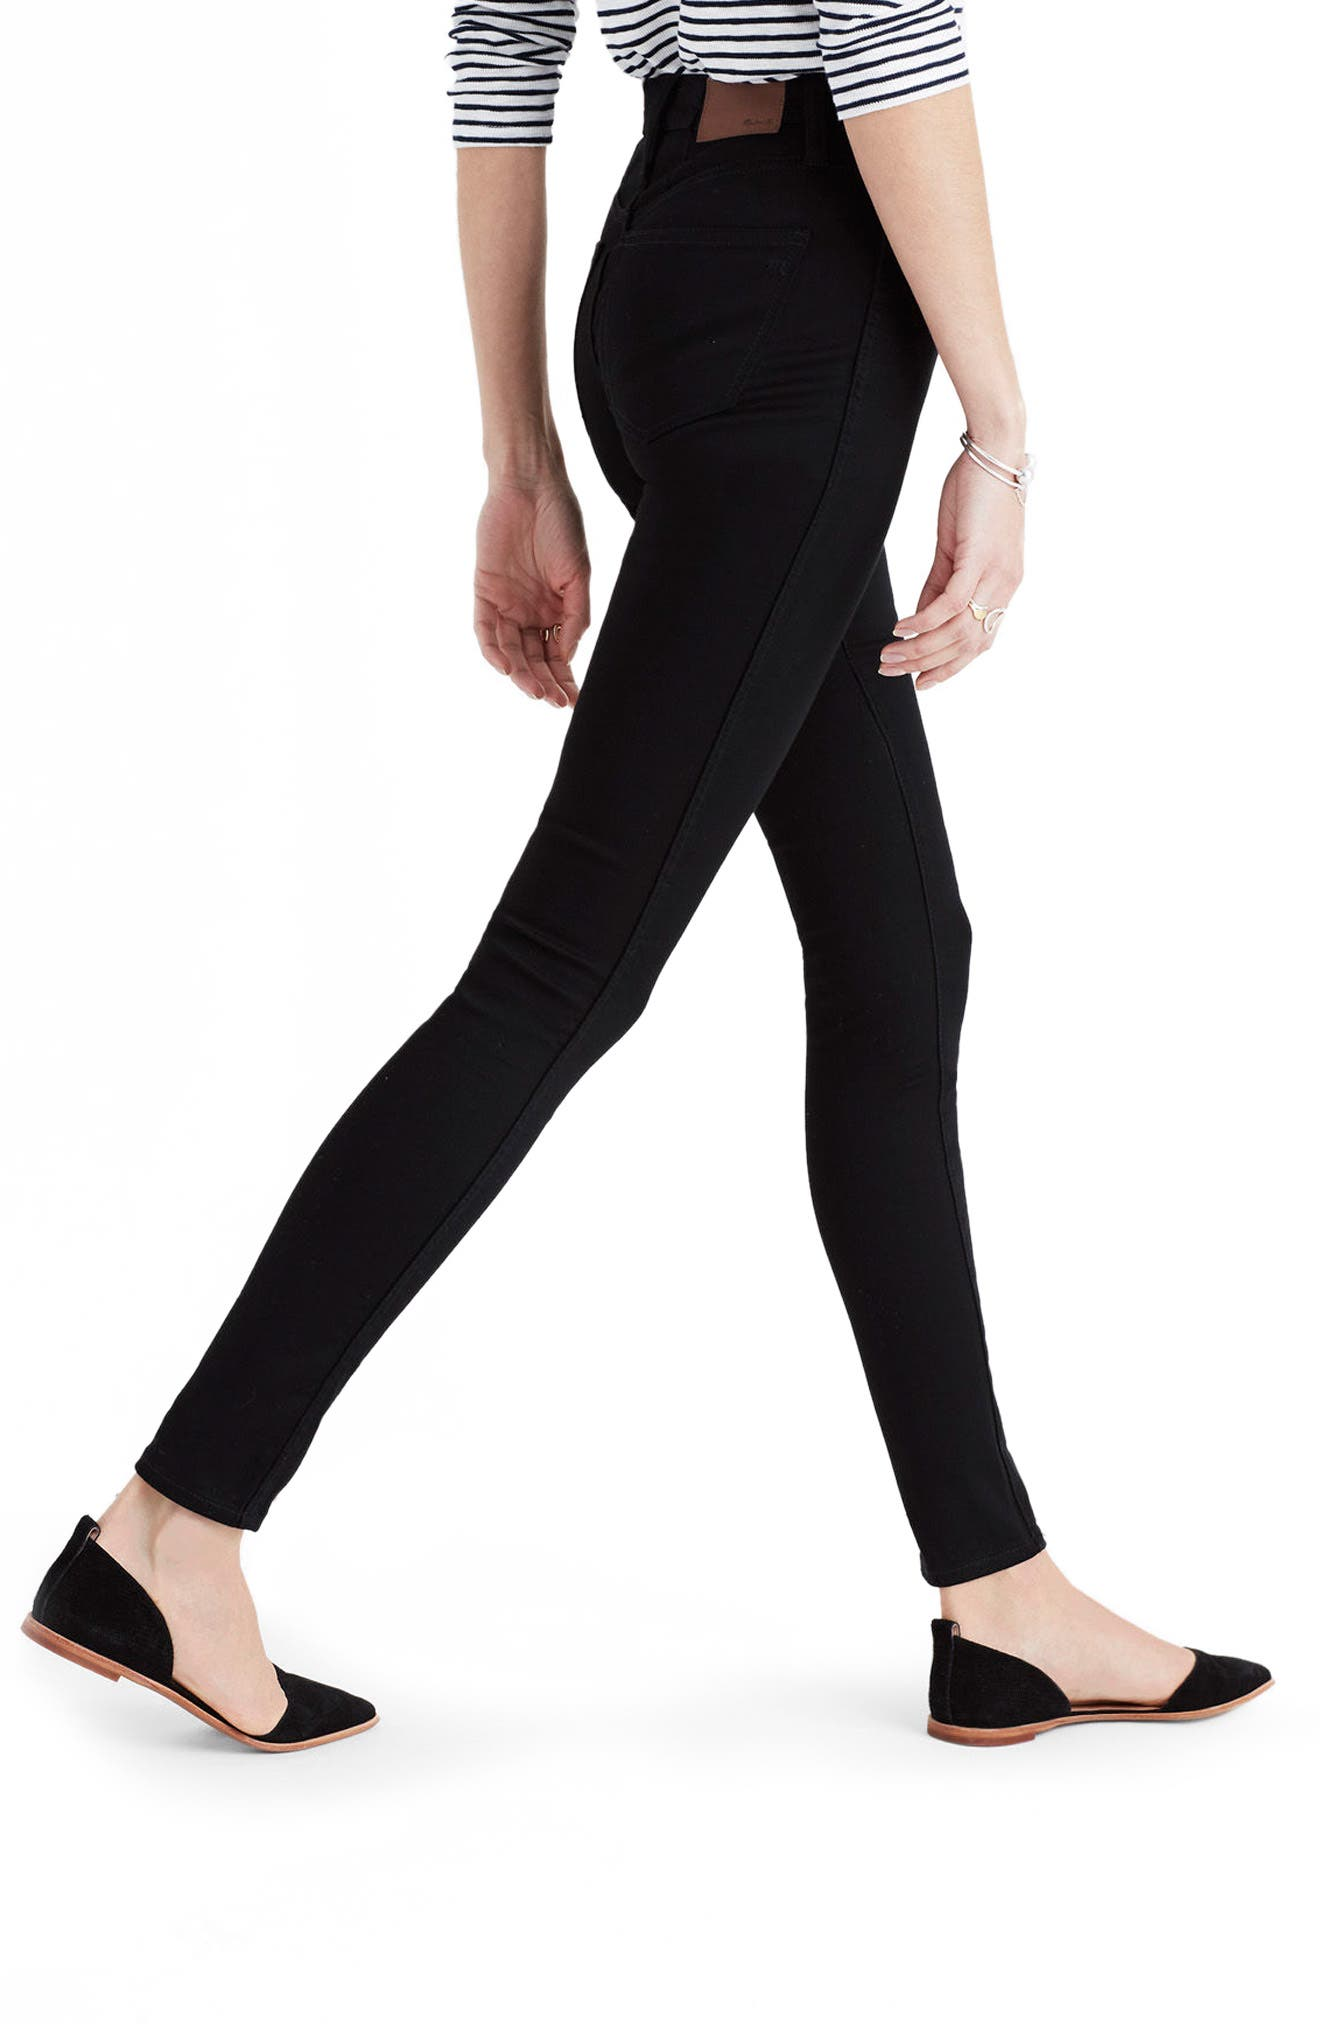 10-Inch High Waist Skinny Jeans,                             Alternate thumbnail 2, color,                             009